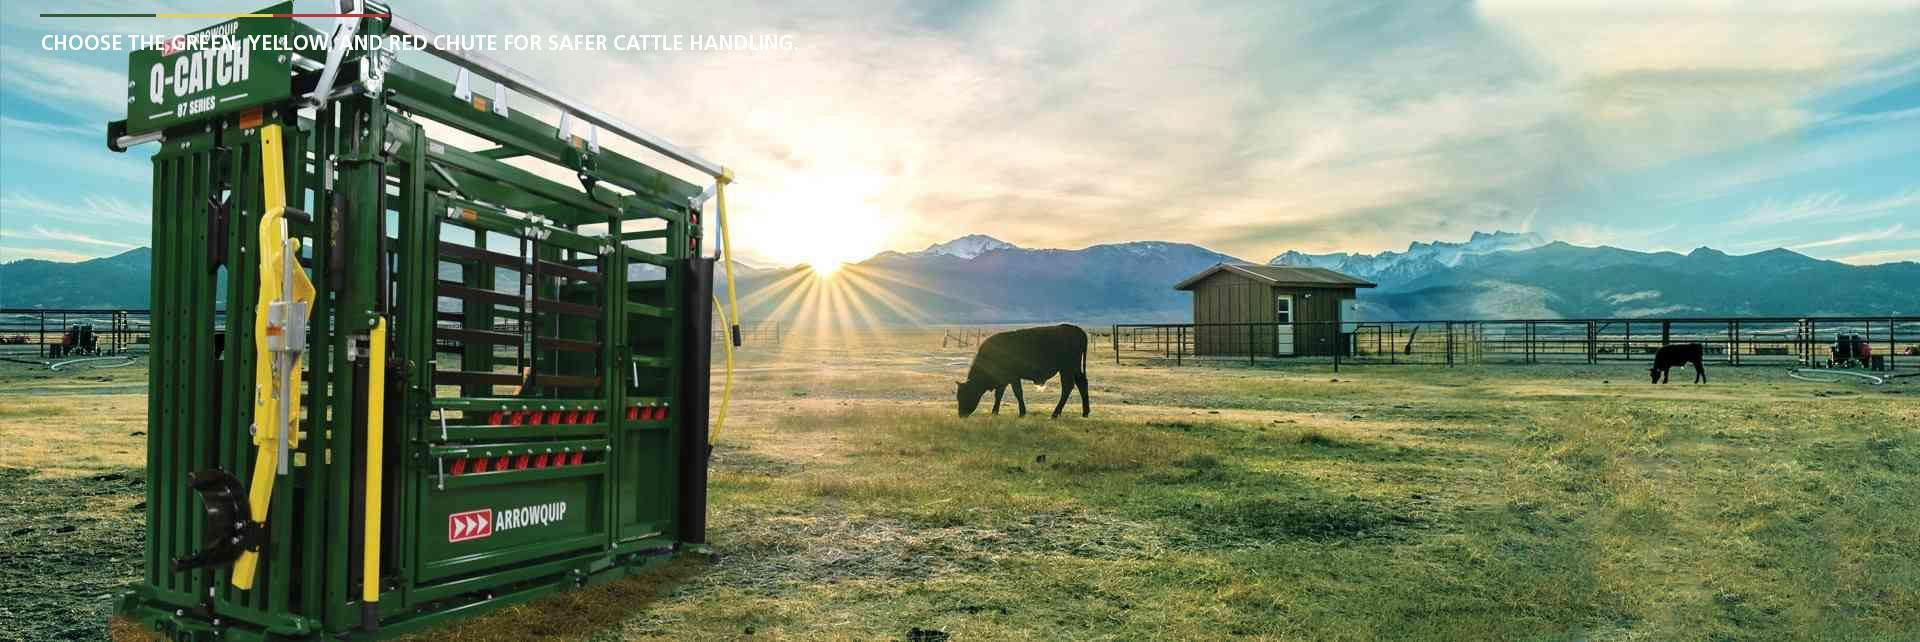 Arrowquip cattle chute in grass pasture with livestock